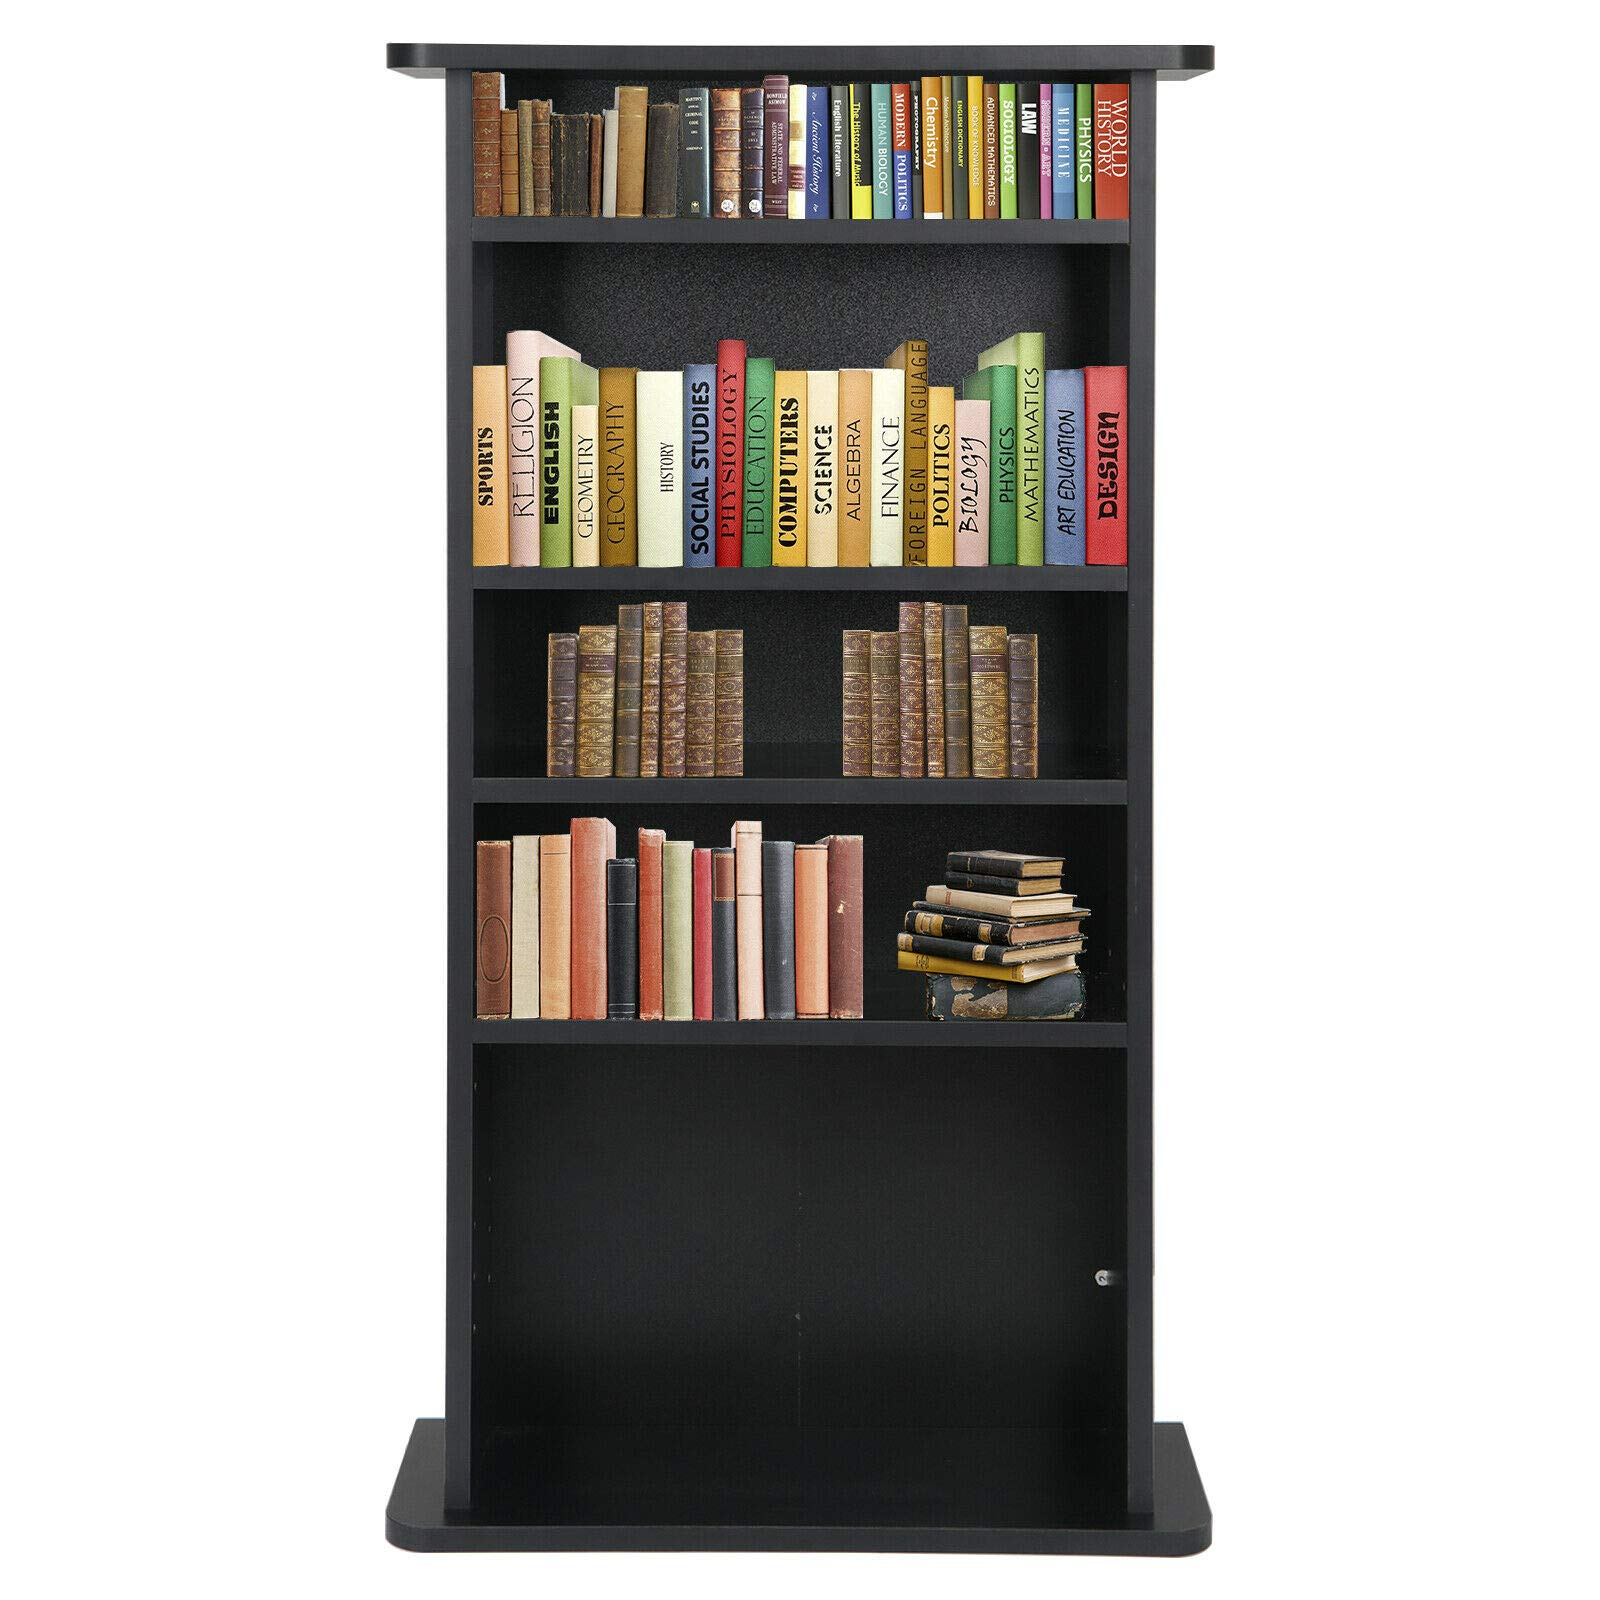 PloybeeShop Height DVD CD This Media Cabinet Storage Adjustable 5 Layers Stand Free Standing 36'' by PloybeeShop (Image #4)